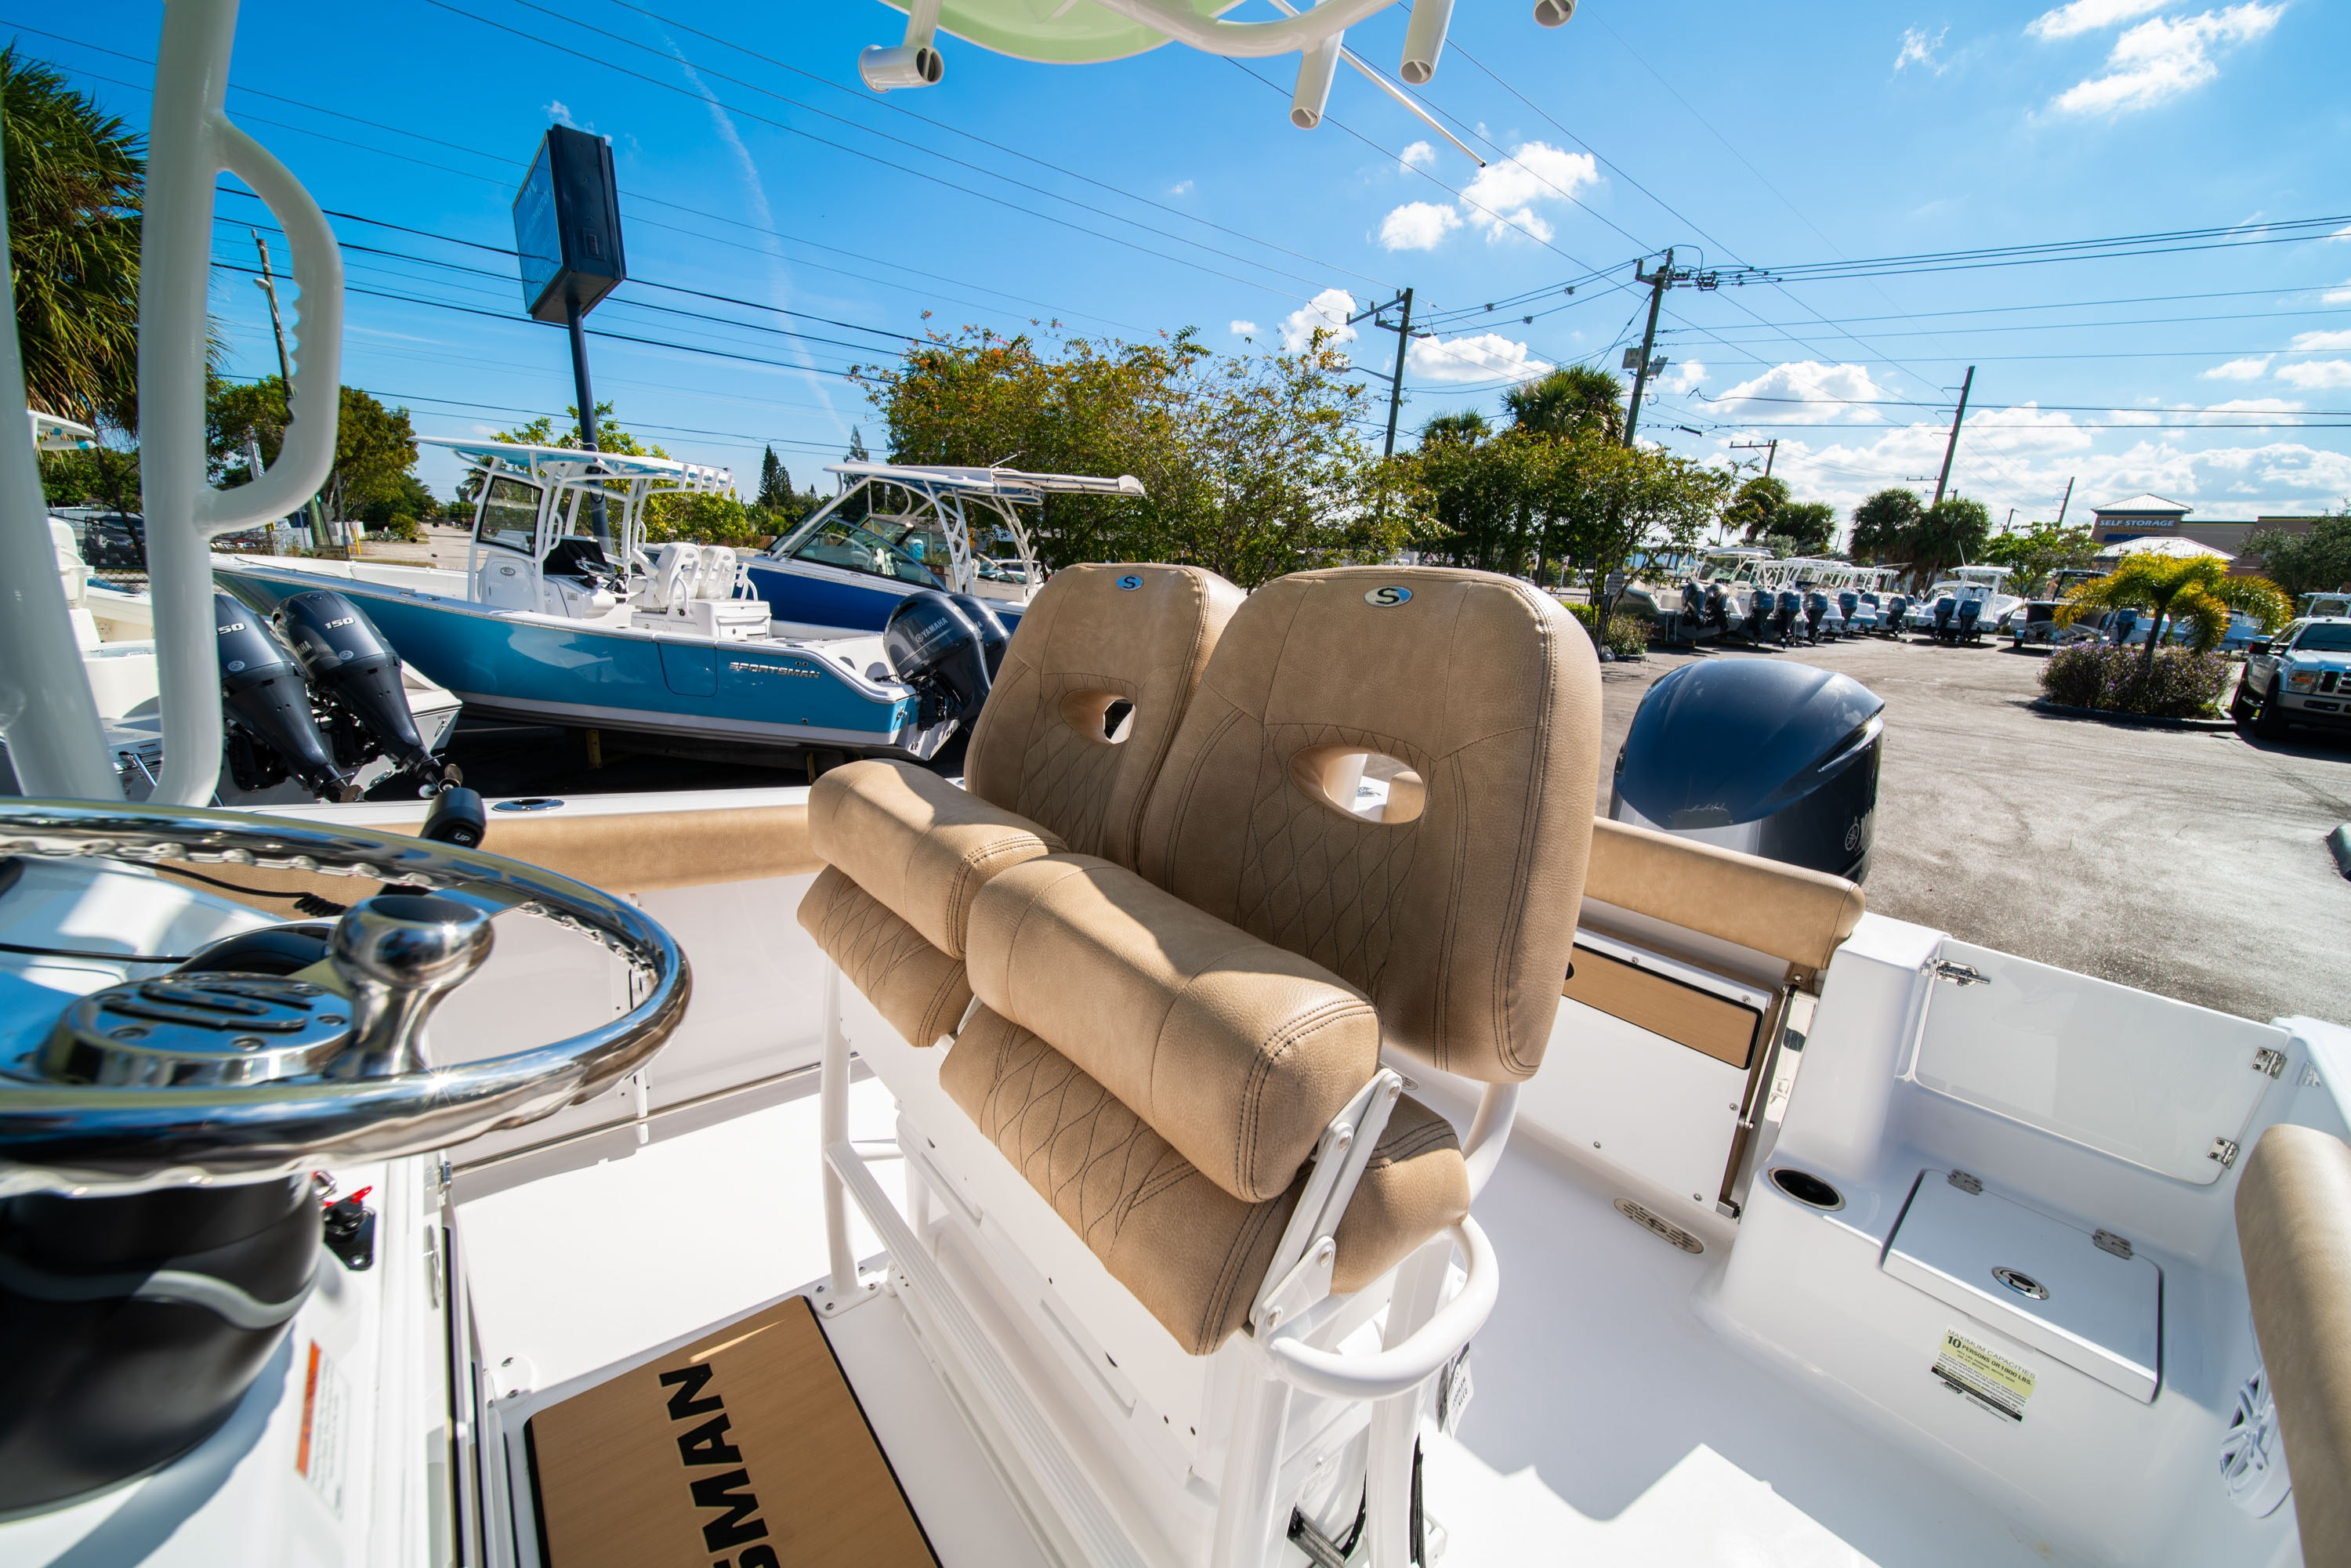 Thumbnail 29 for New 2020 Sportsman Open 232 Center Console boat for sale in West Palm Beach, FL